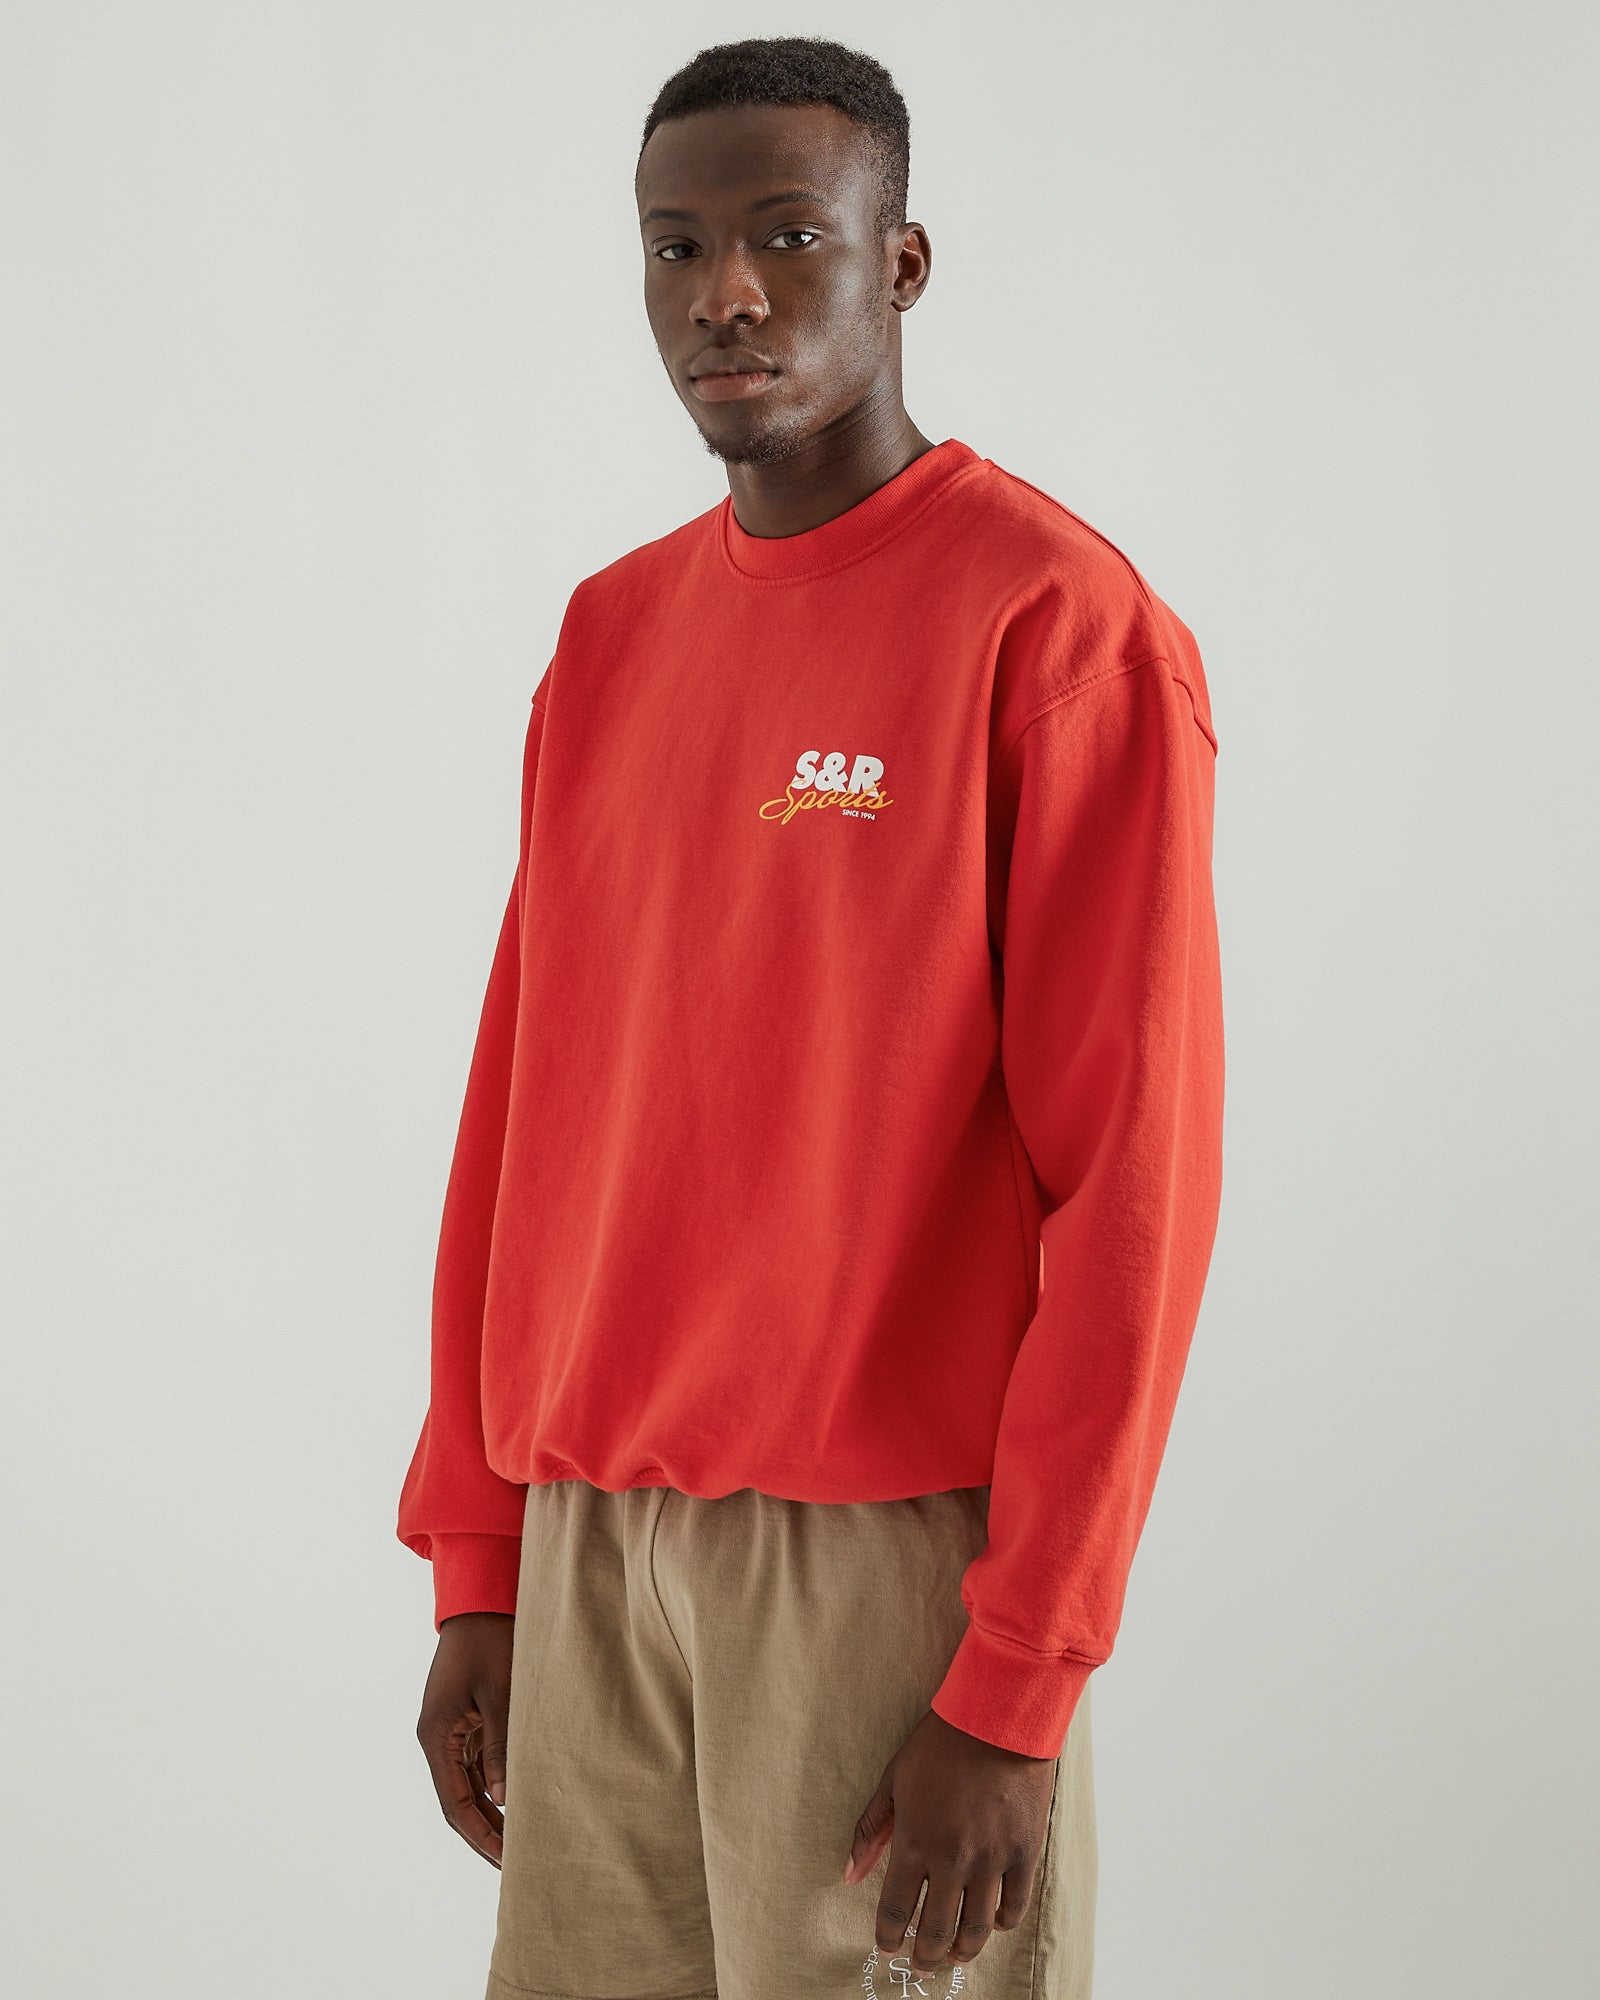 S&R Sports Crewneck in Cherry